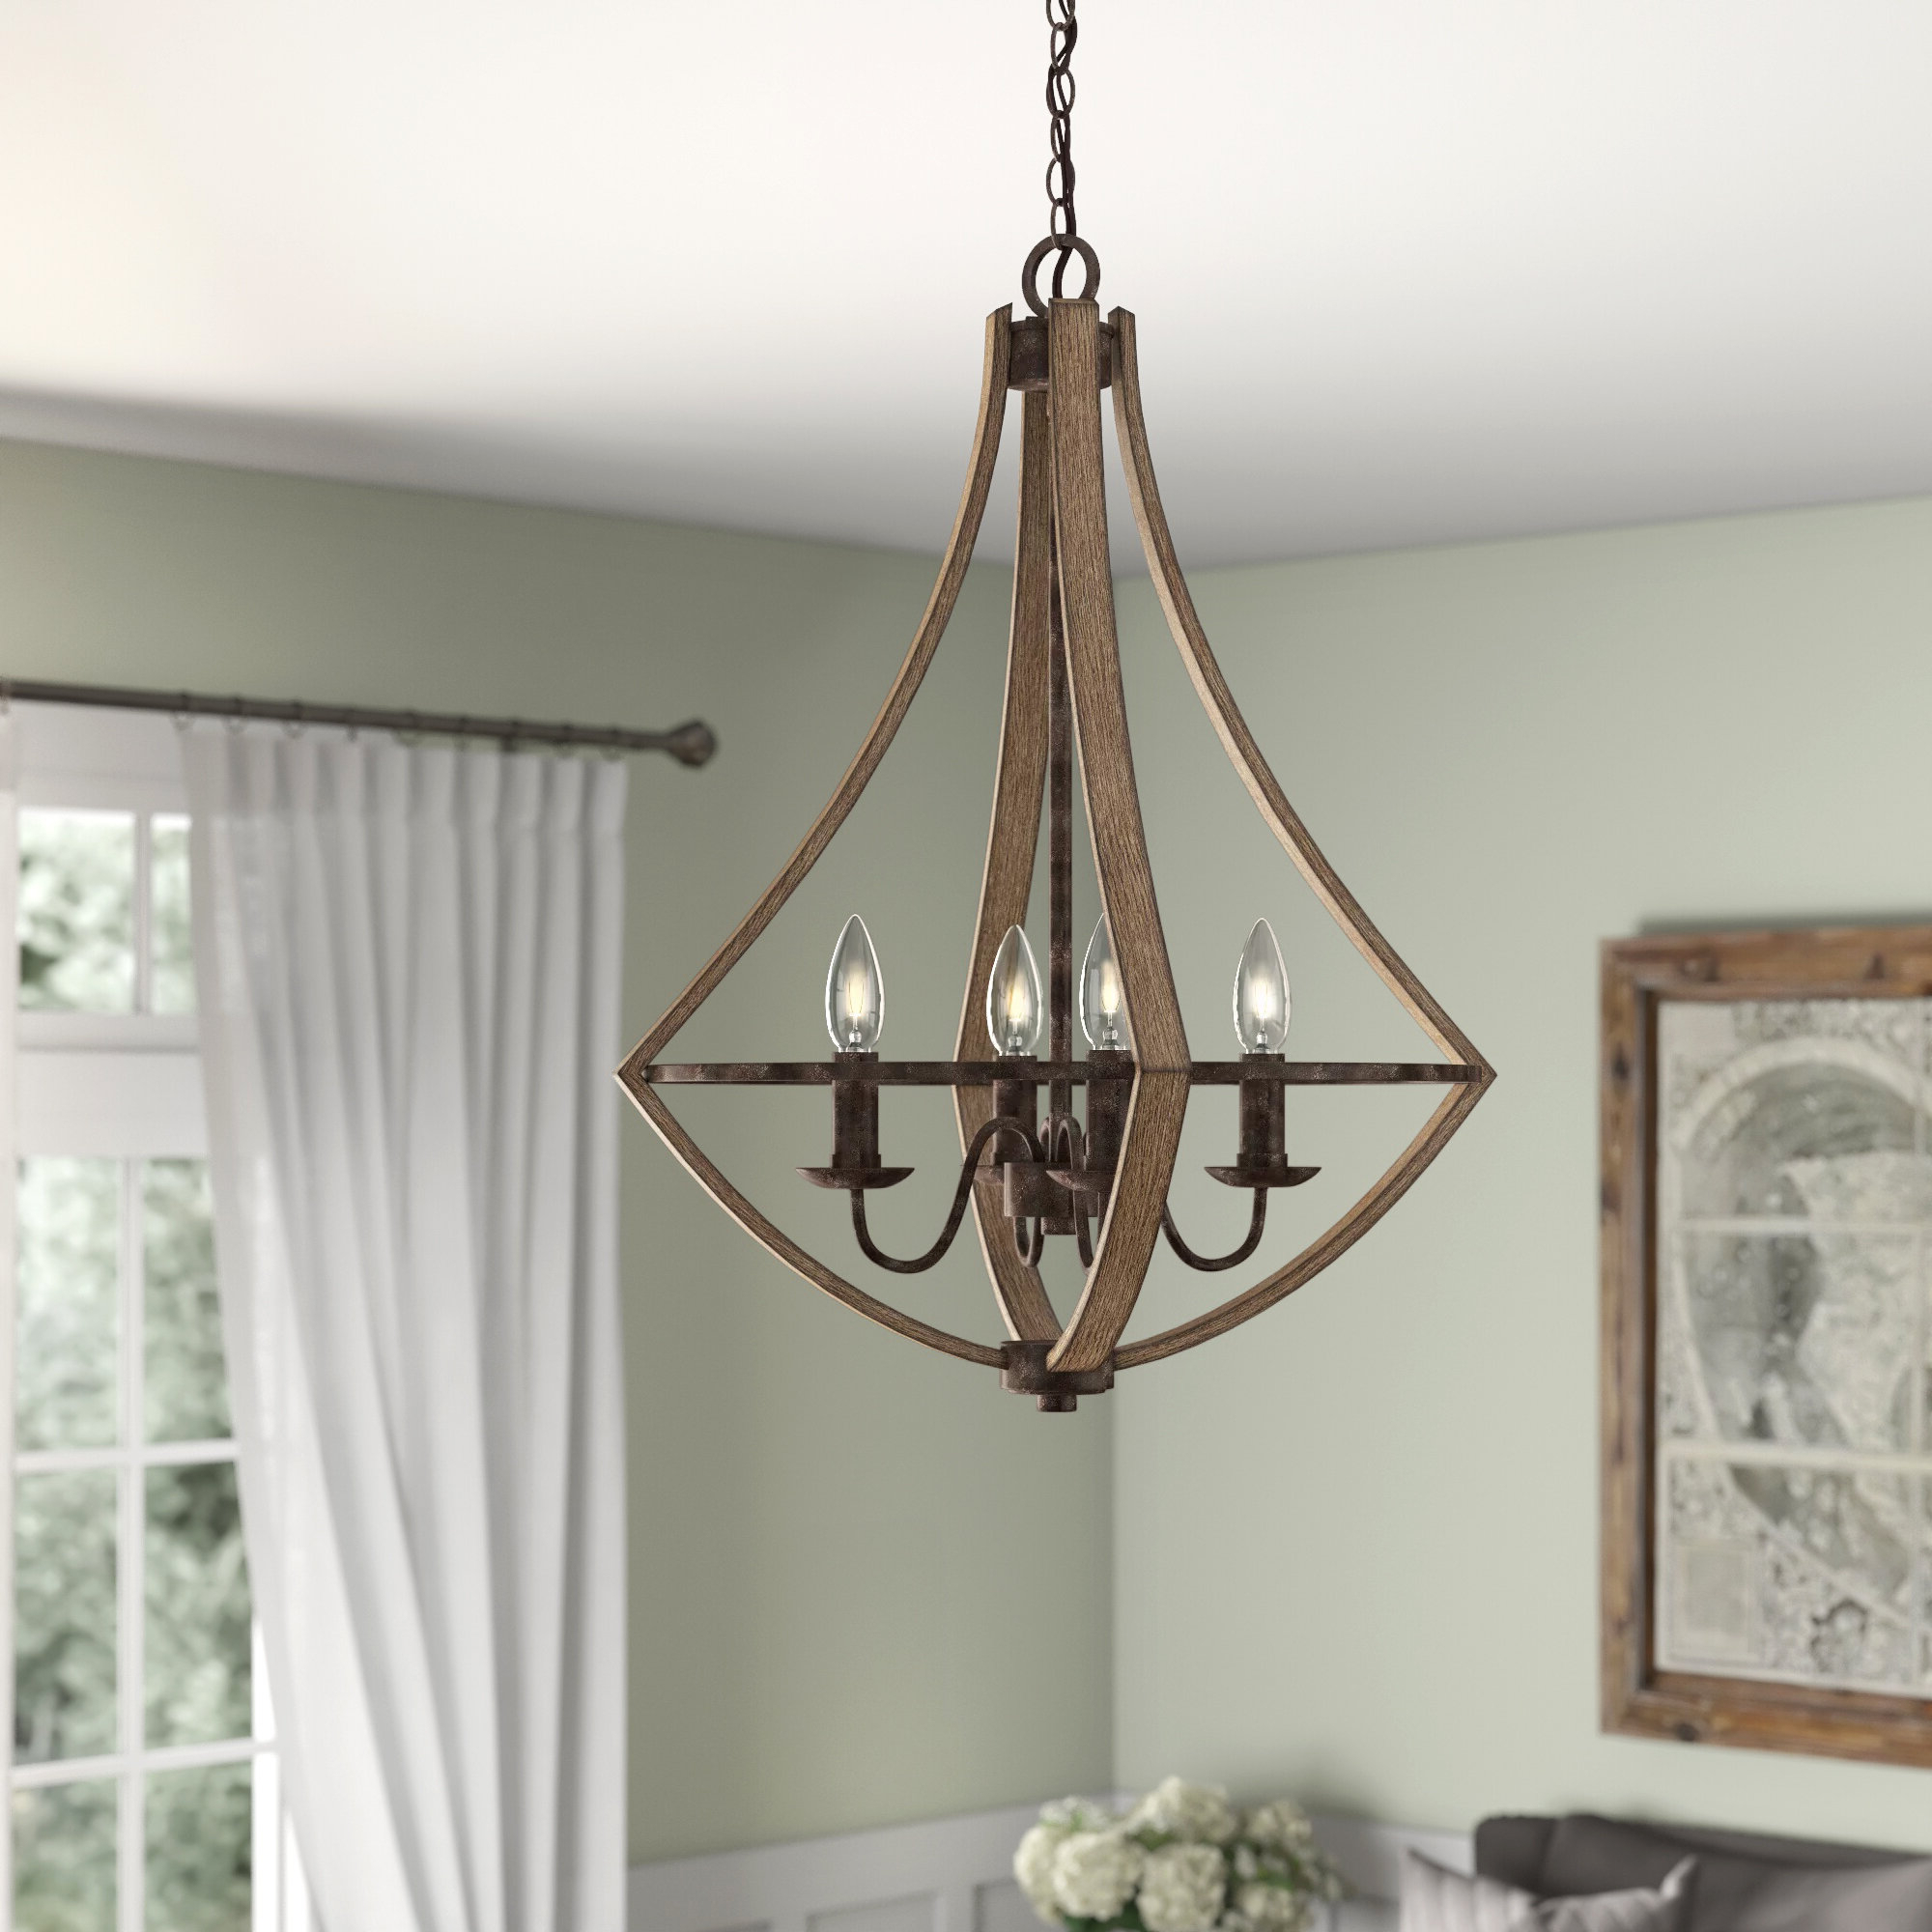 Famous Wadlington 6 Light Single Cylinder Pendants With Regard To Reimers 4 Light Candle Style Chandelier (Gallery 16 of 20)